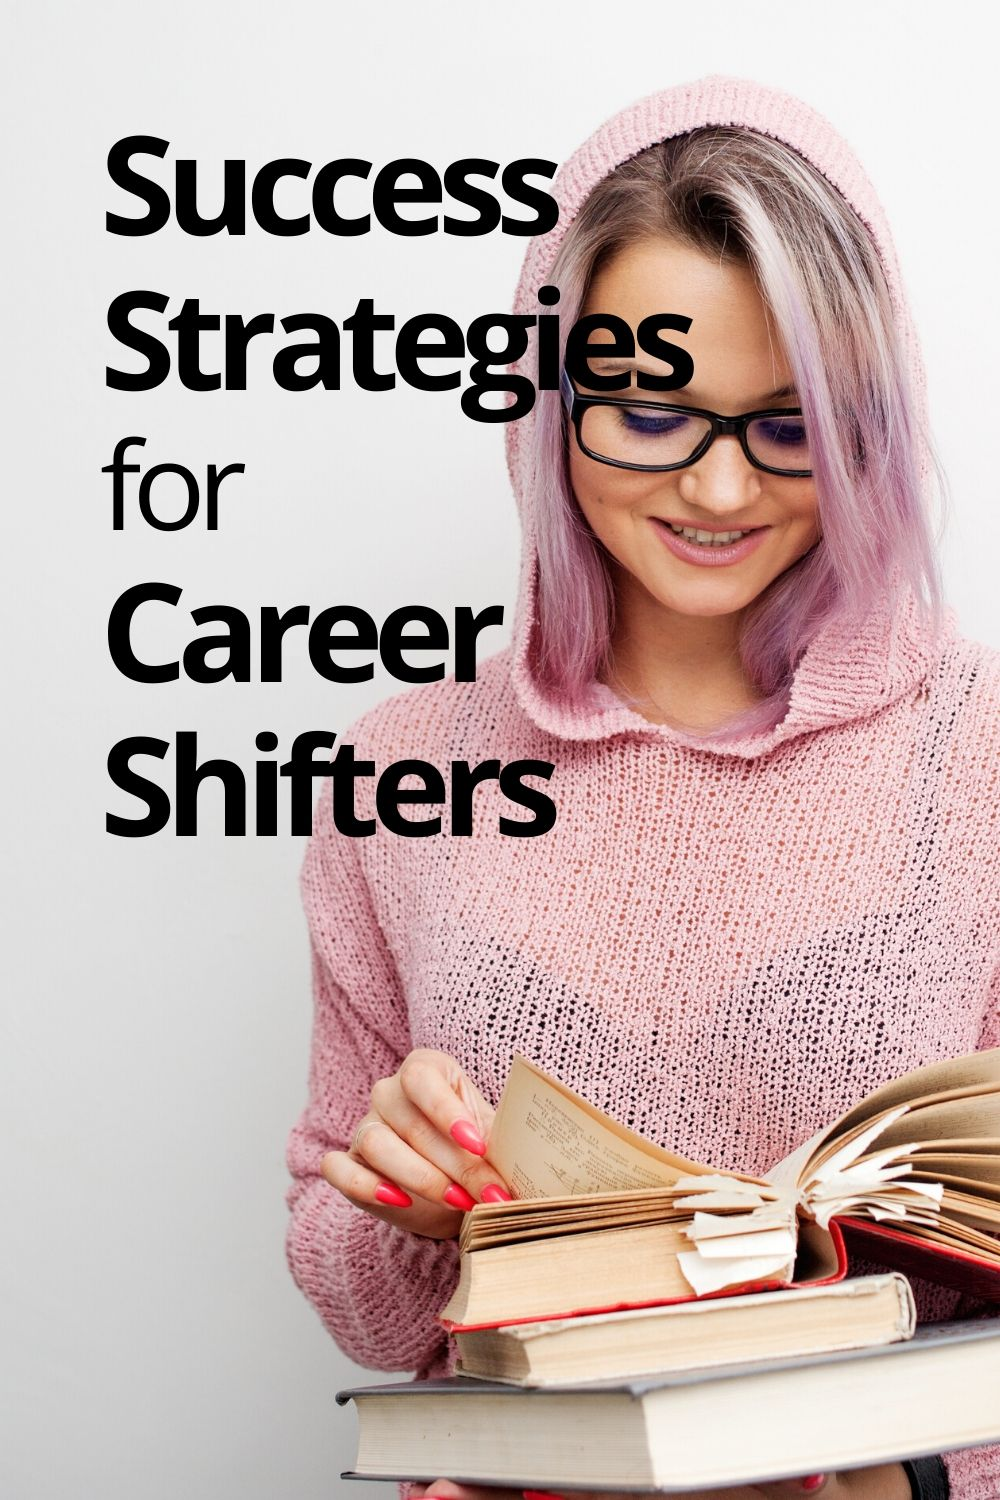 Success Strategies for Career Shifters. How to Make a Successful Career Change.